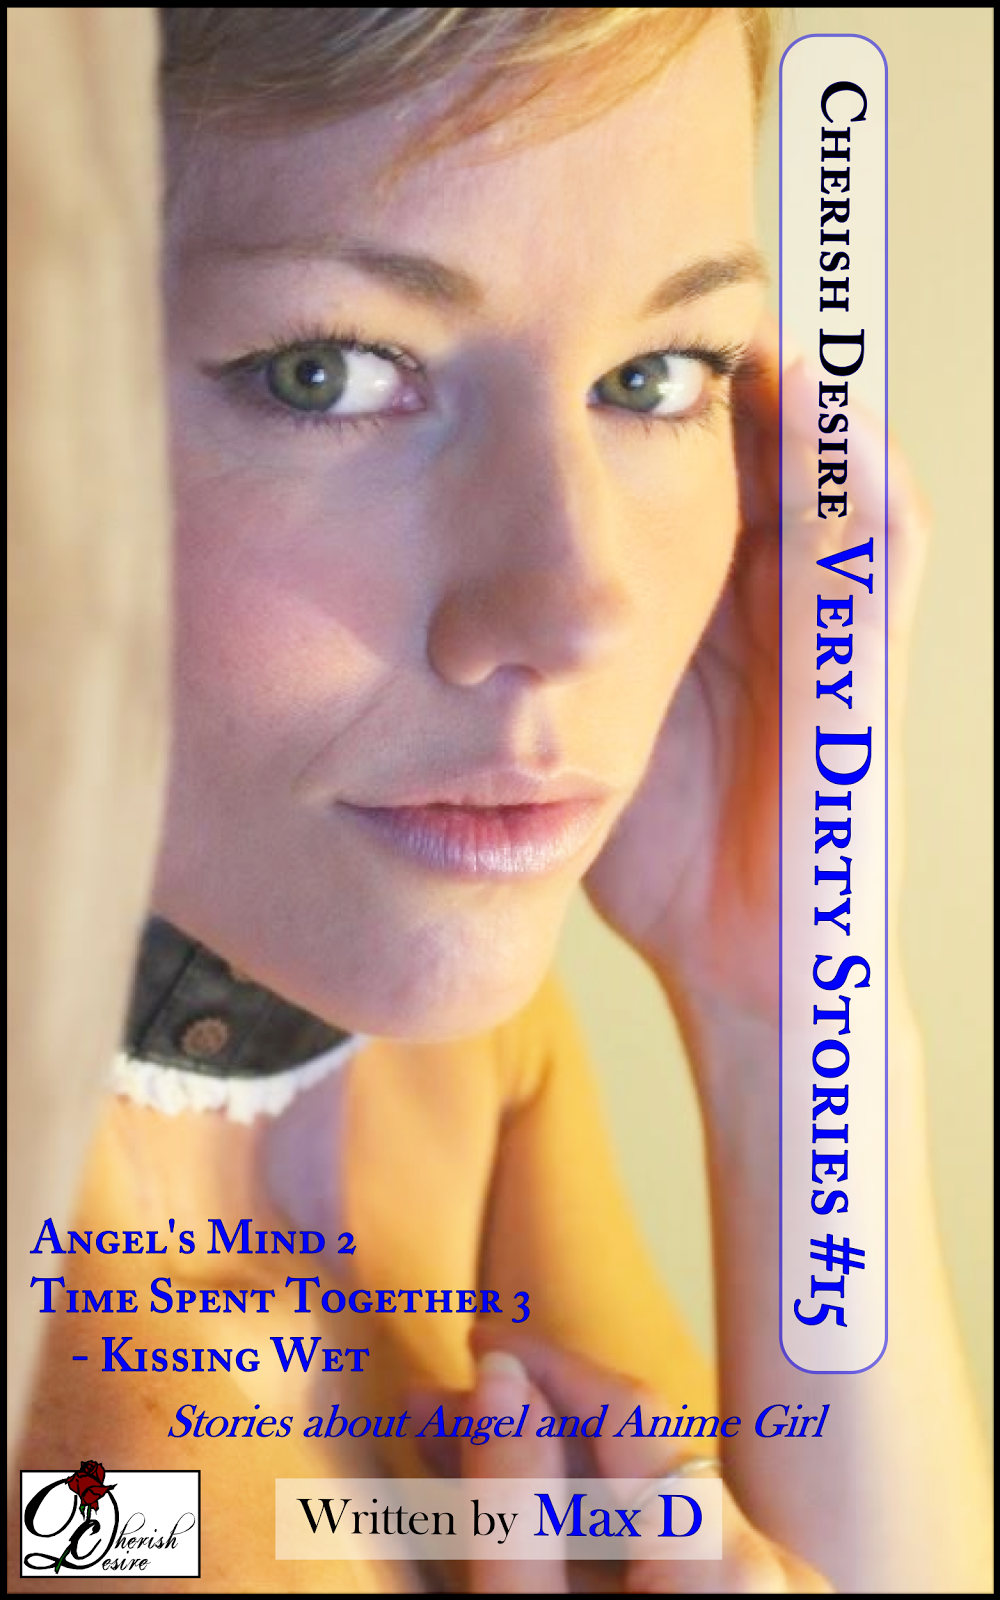 Cherish Desire: Very Dirty Stories #15, Max D, erotica